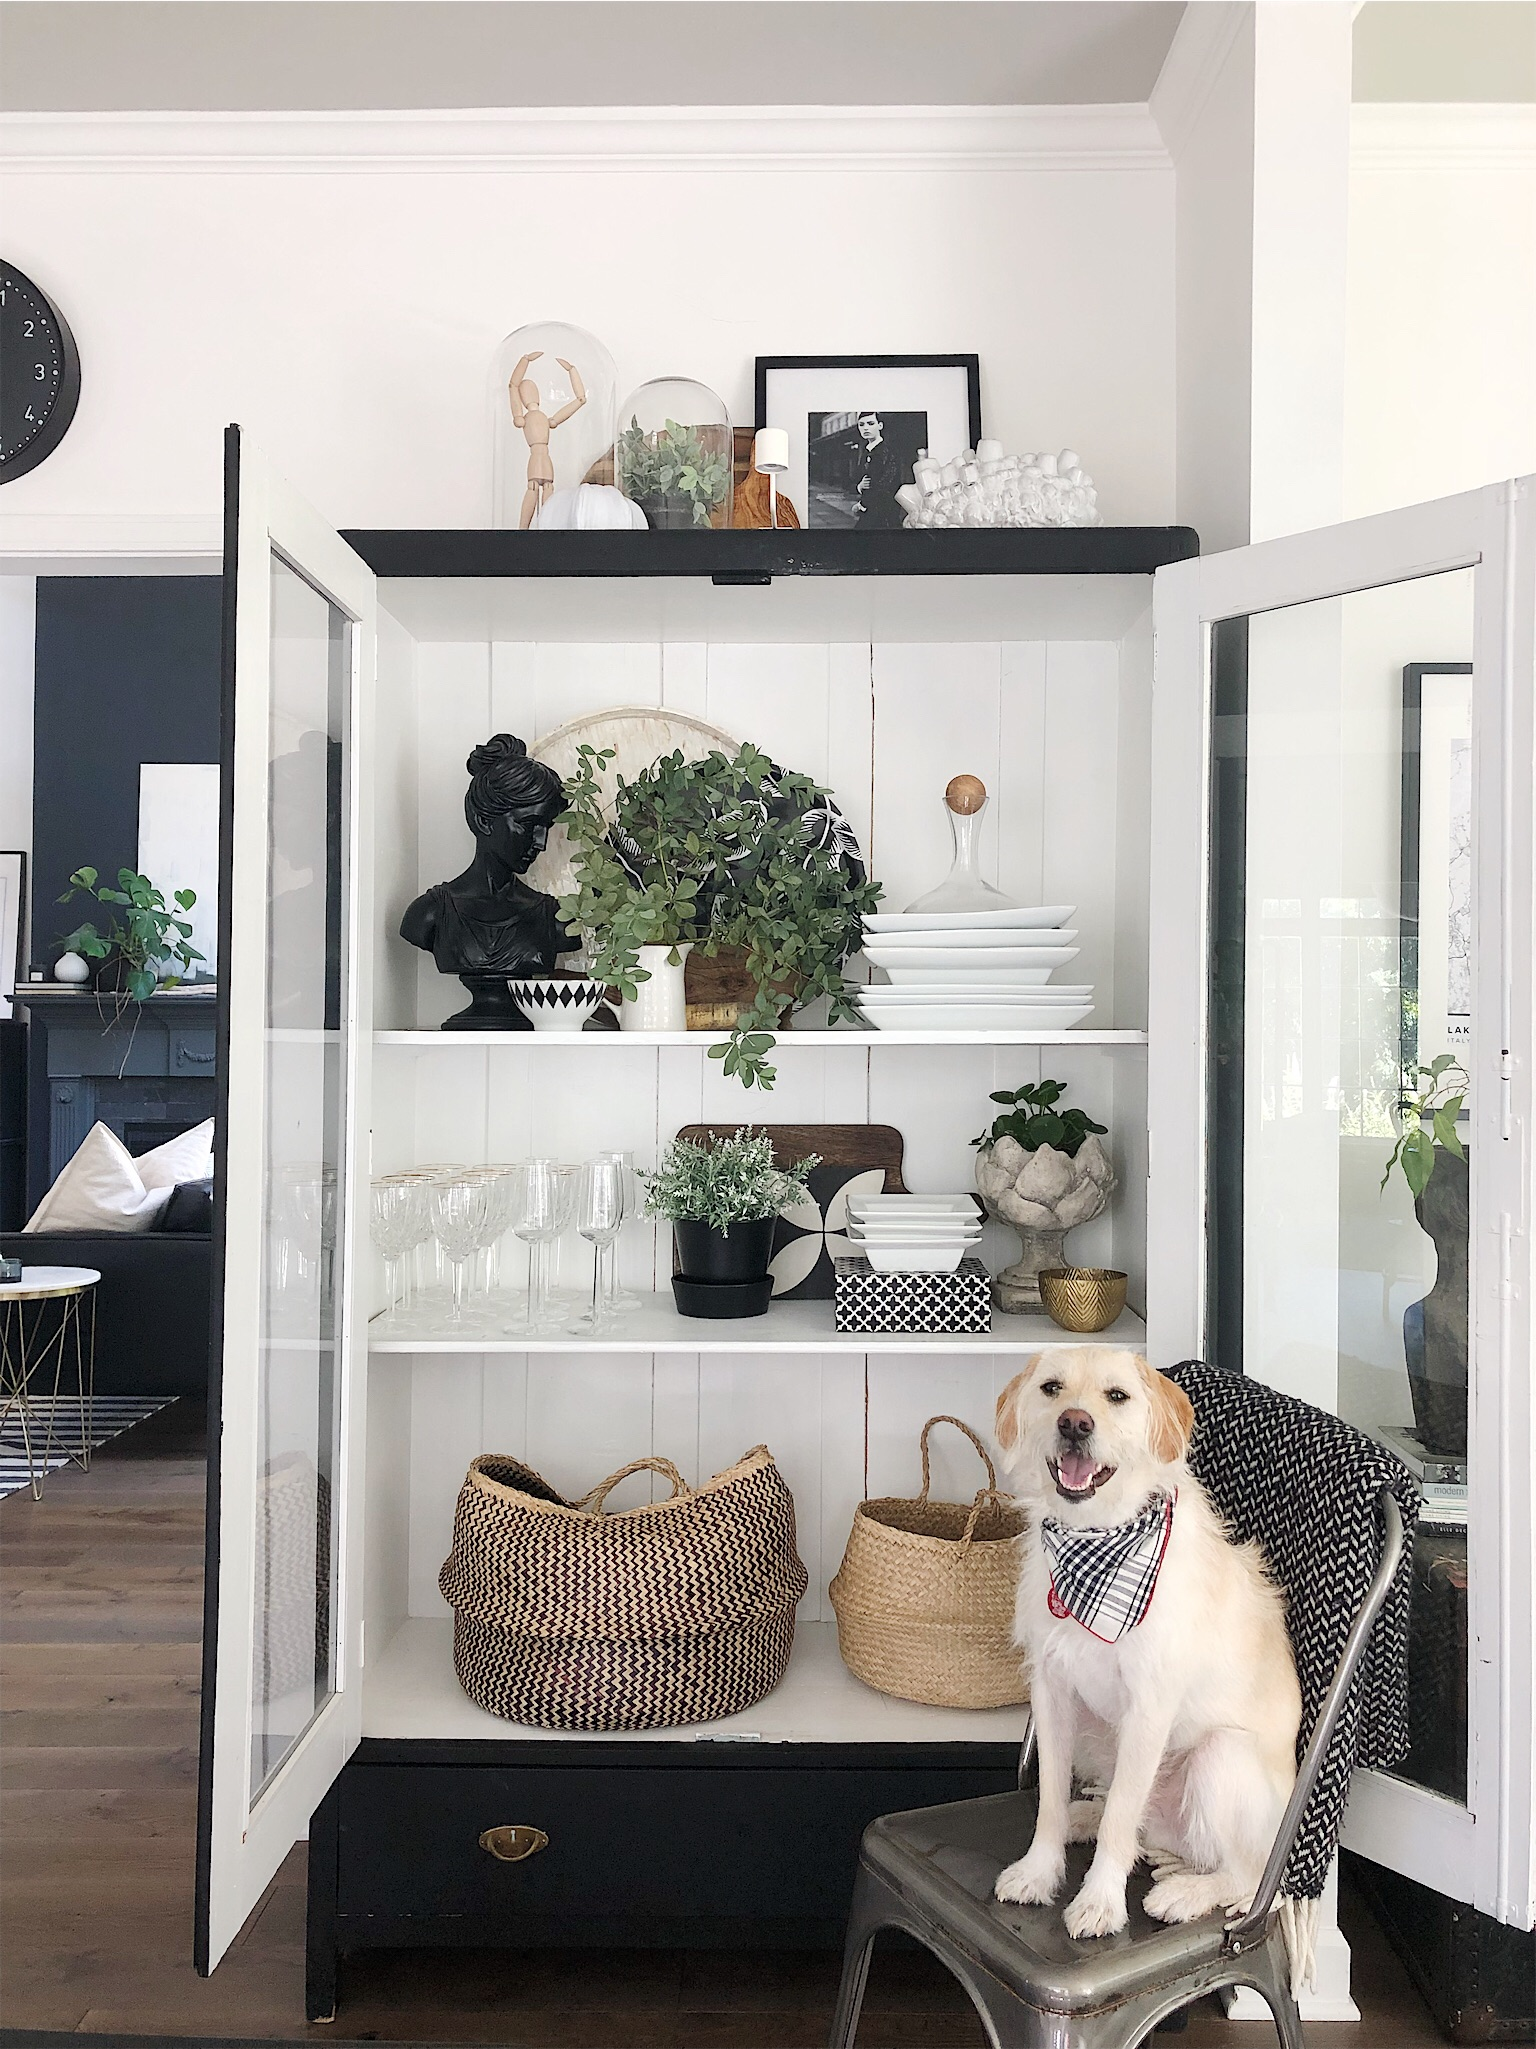 Your Shelves & China Cabinet - Tips for Styling them!